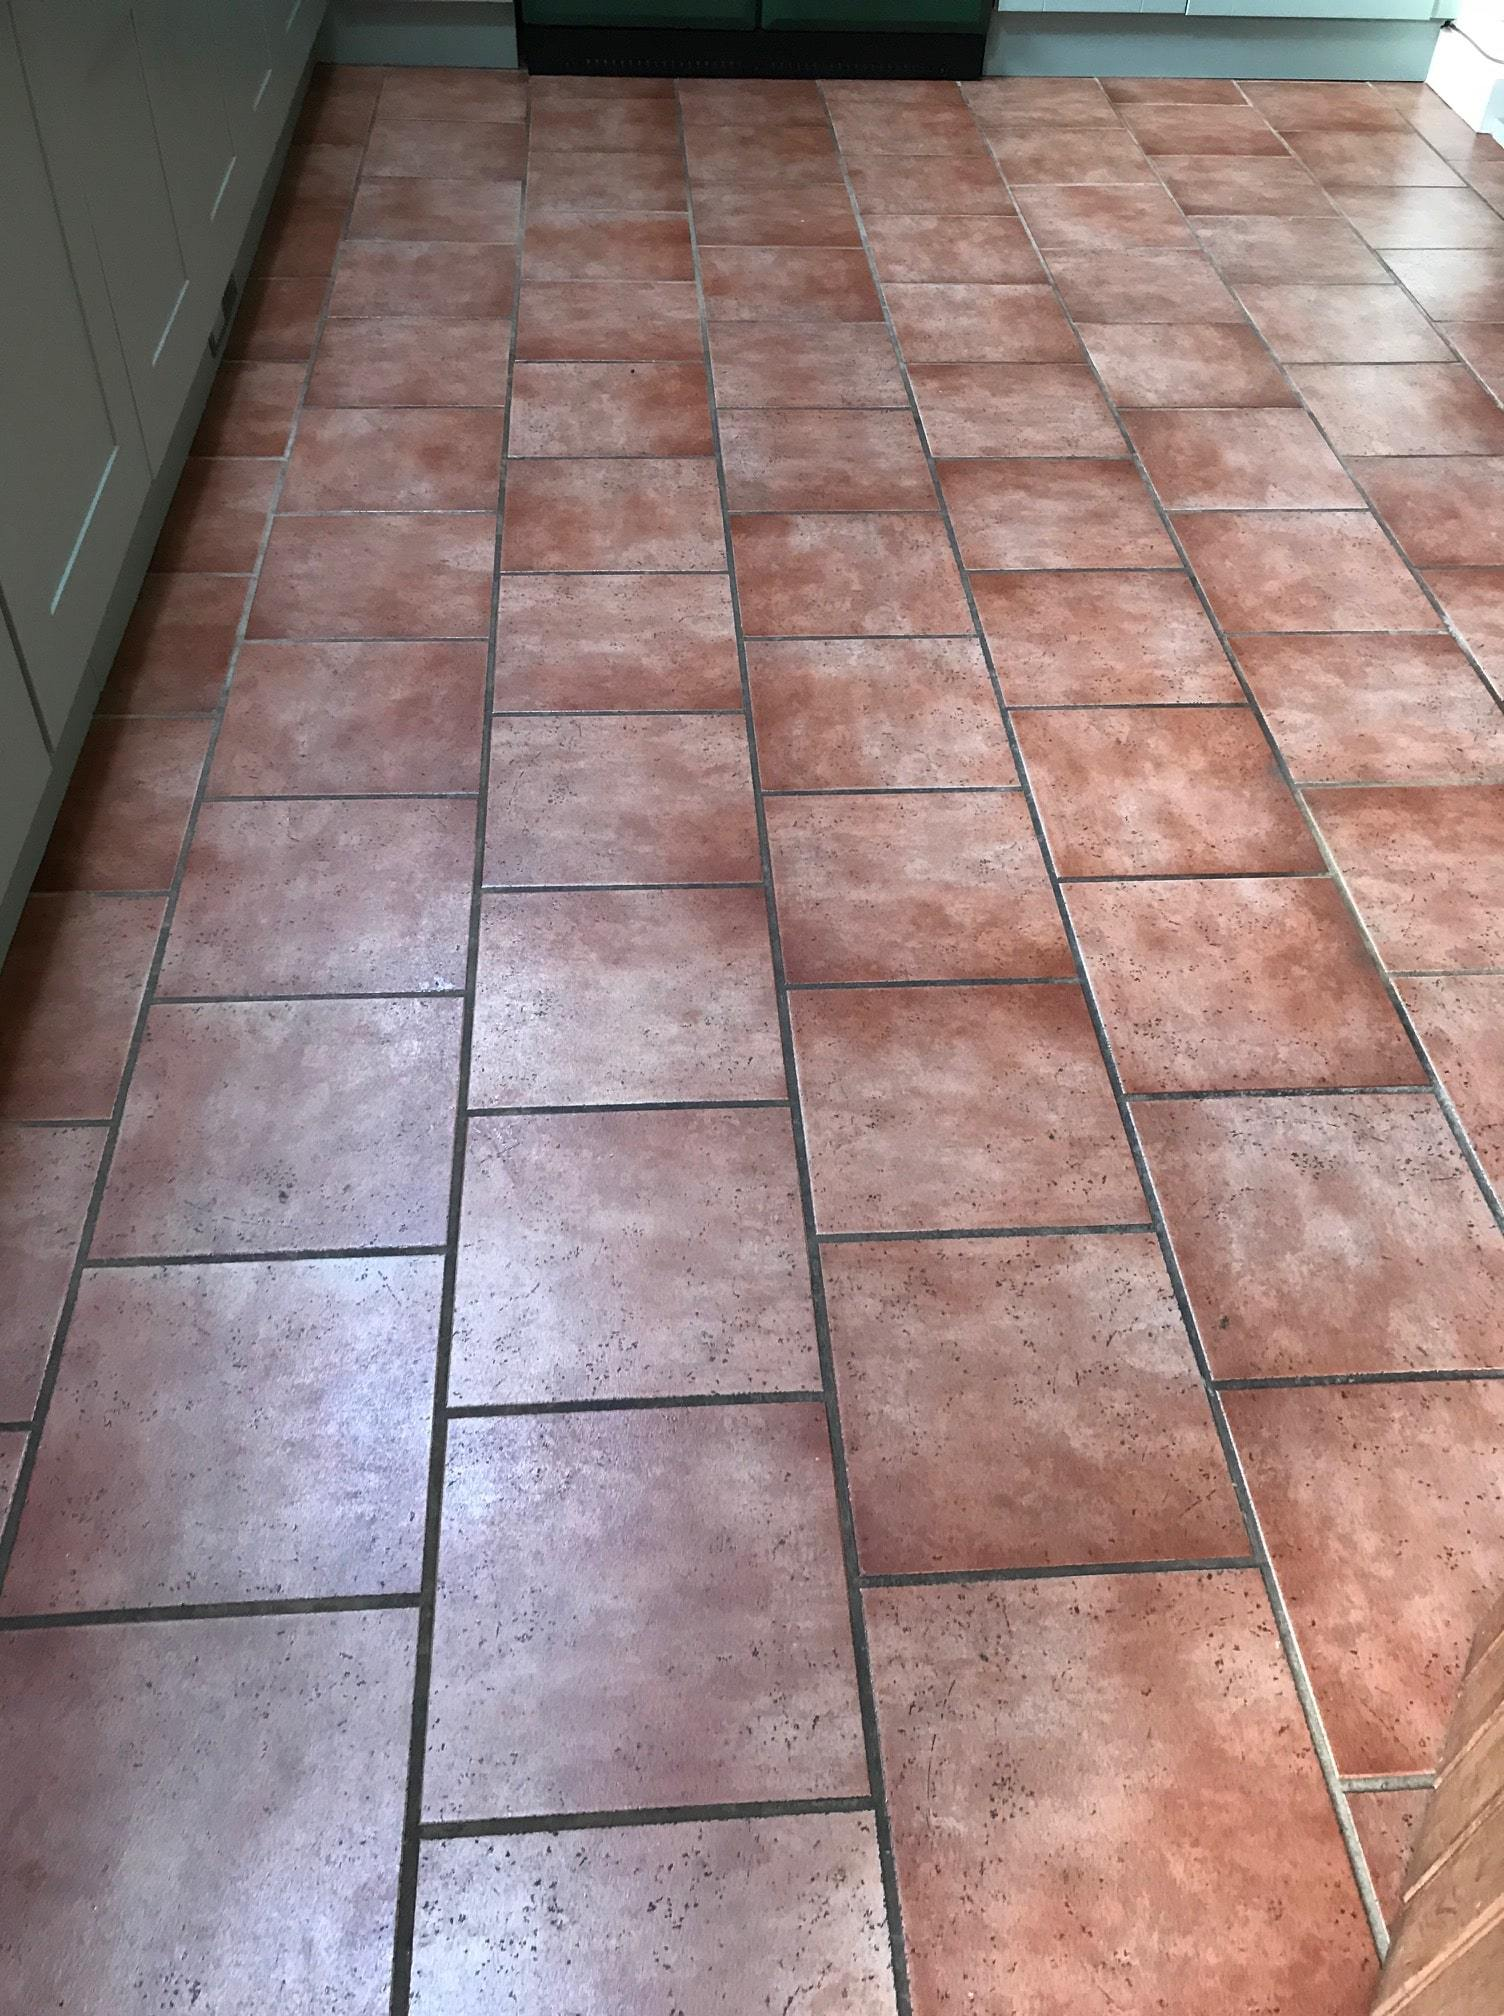 Ceramic Tiled Kitchen Floor Before Grout Colouring